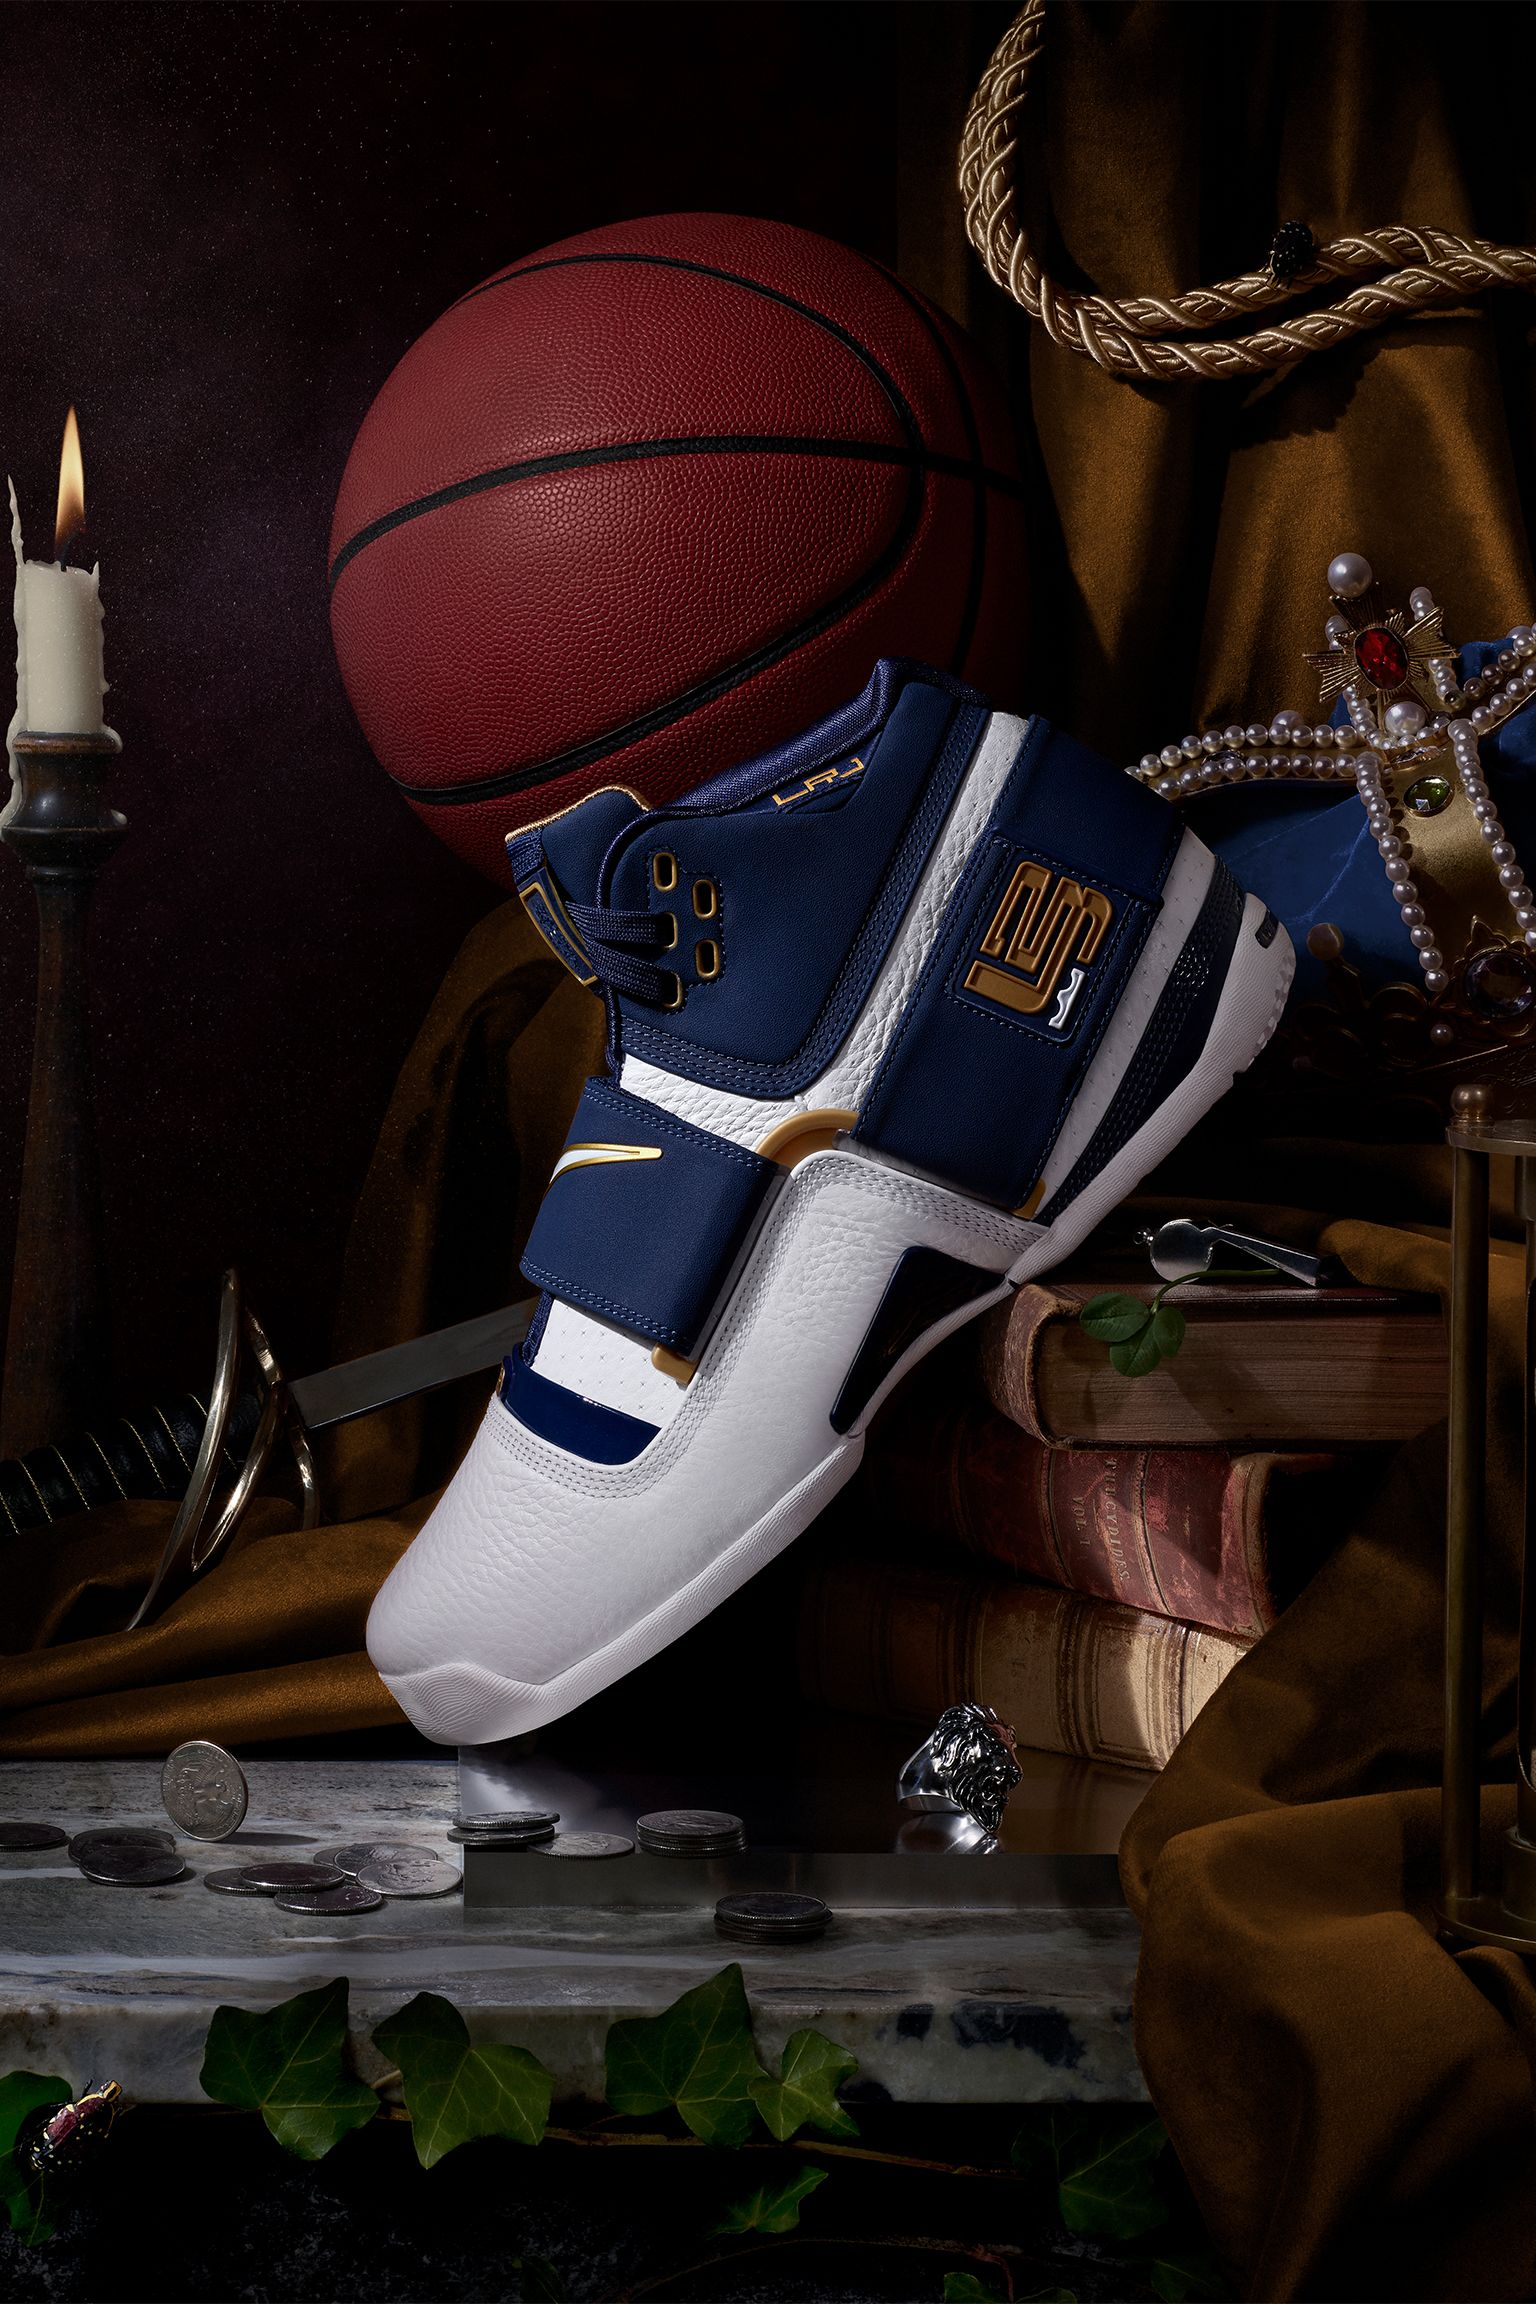 new arrivals 940a0 0c76b Nike Lebron Soldier 1 'Art of a Champion' Release Date. Nike ...